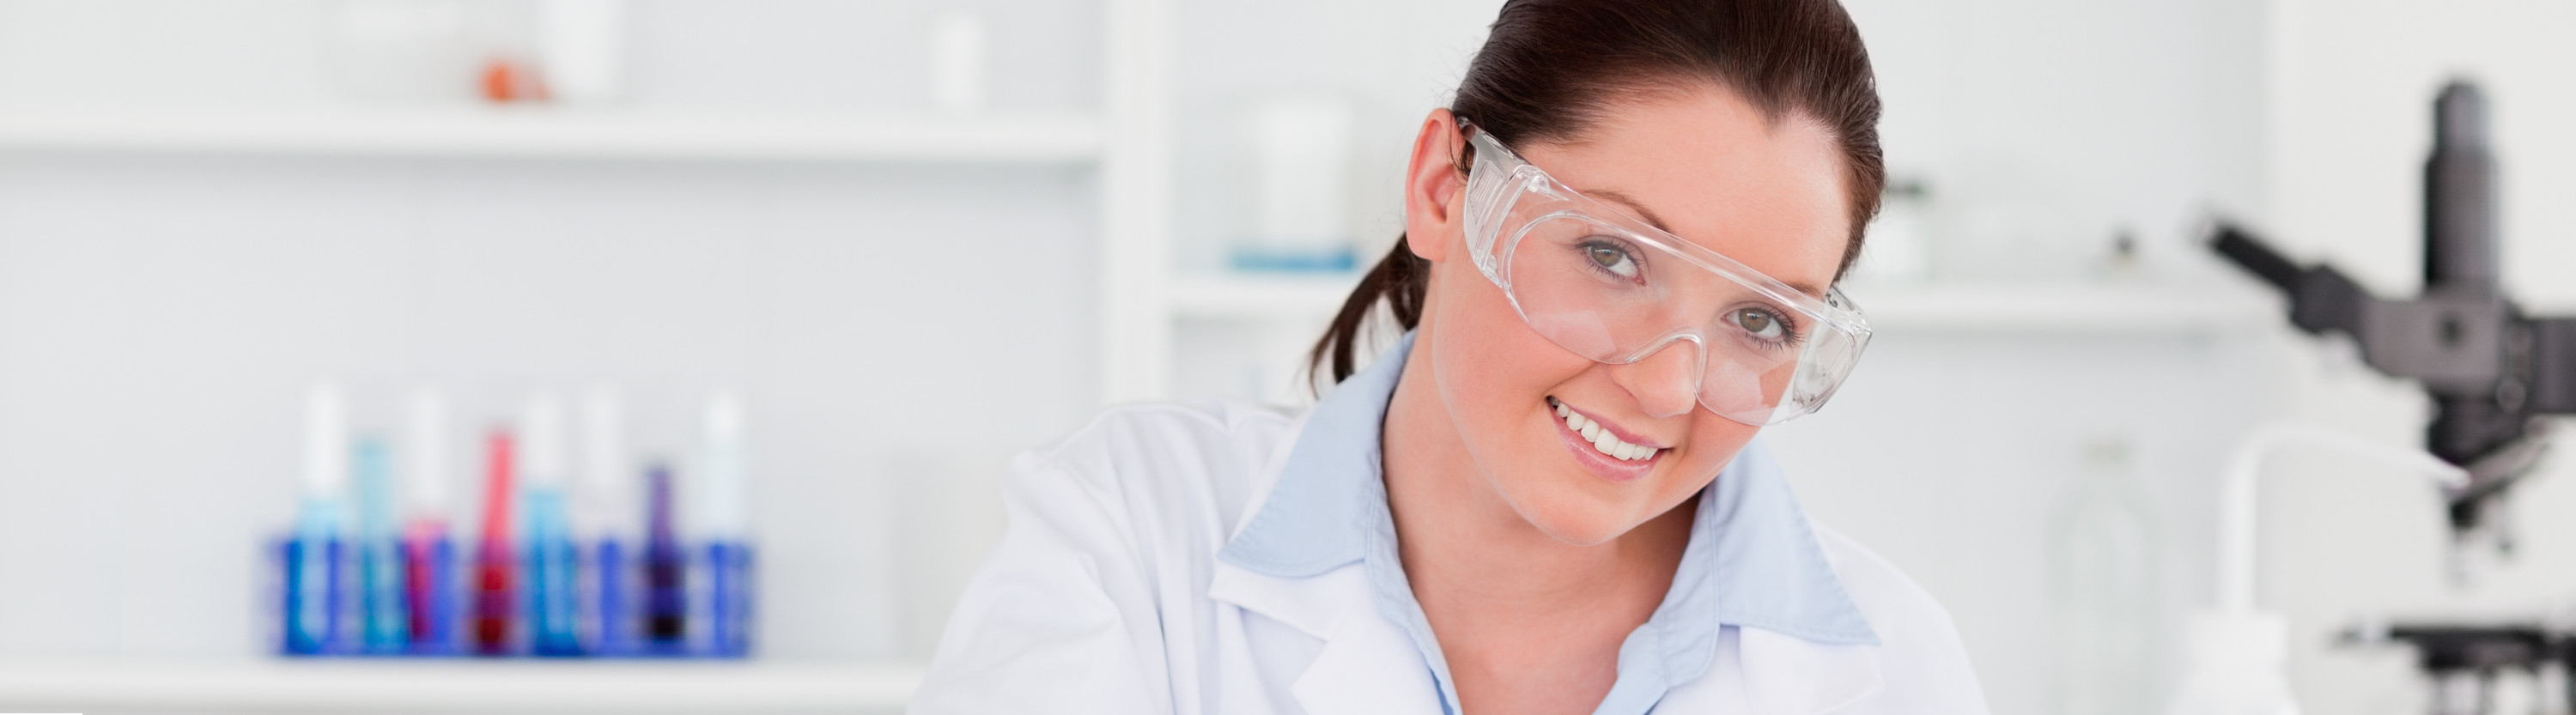 canstockphoto6568296_WomanInLab_72dpi_1260x350